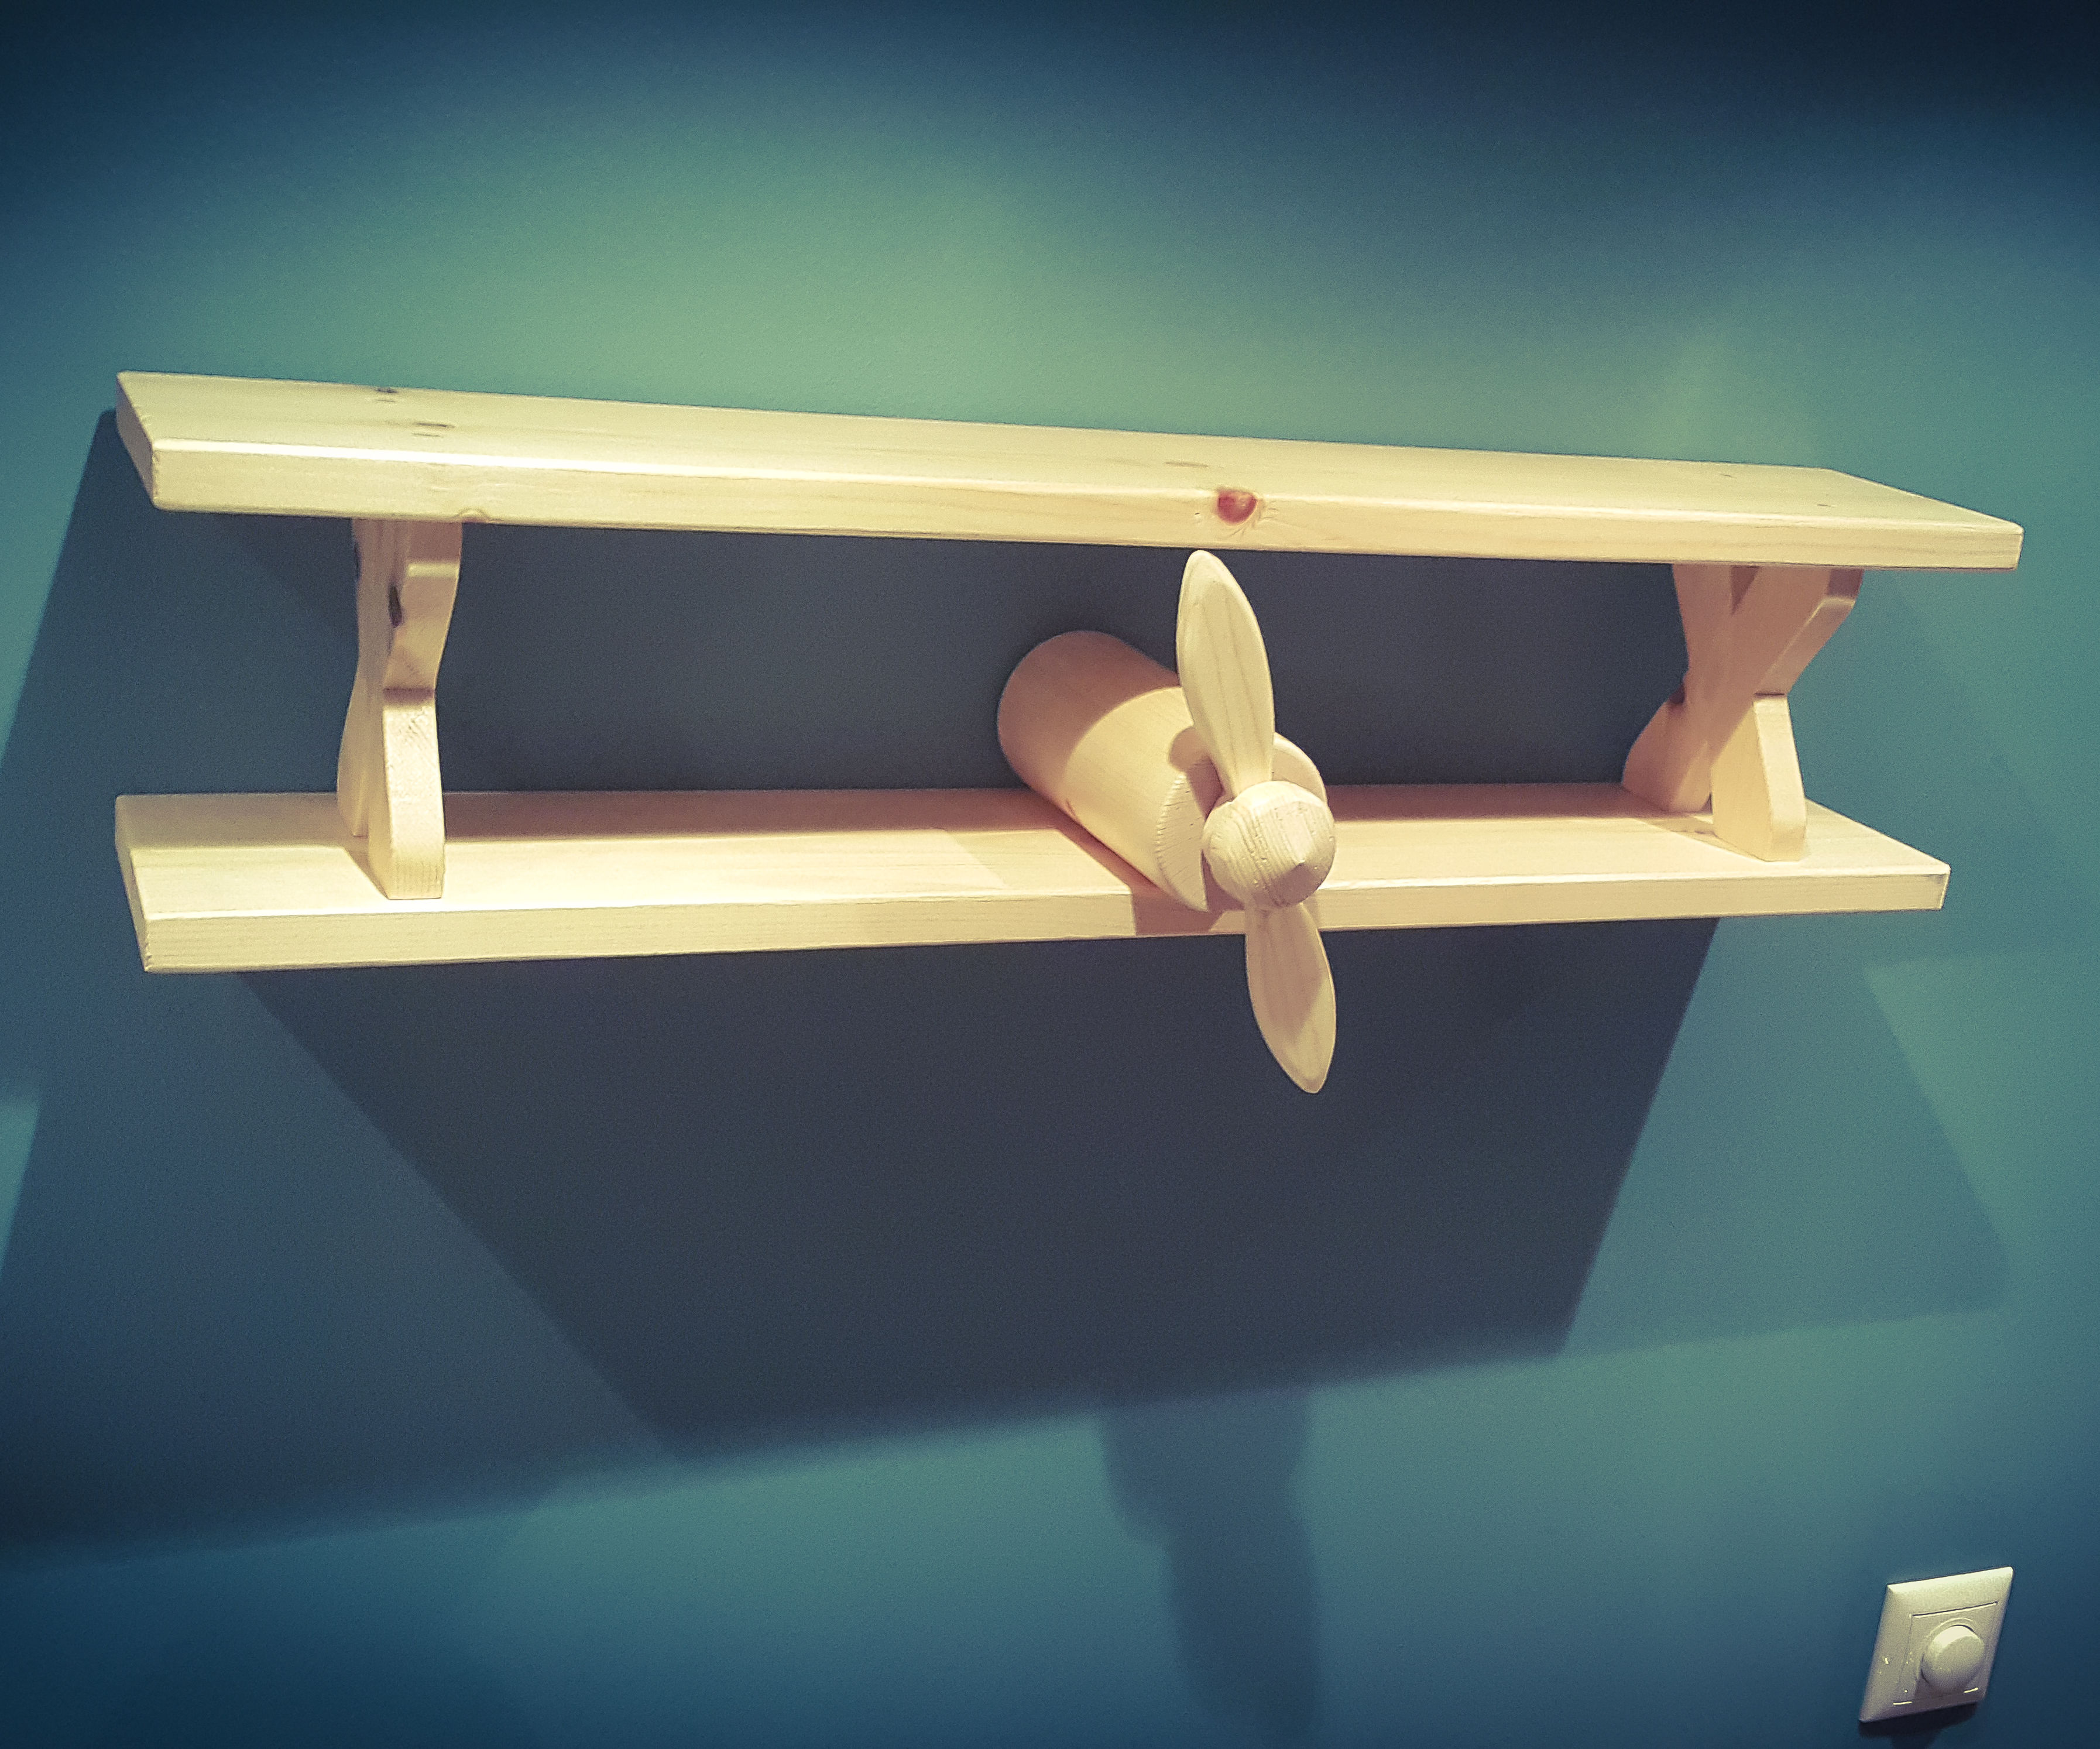 Making an Airplane Shelf for Kids Bedroom